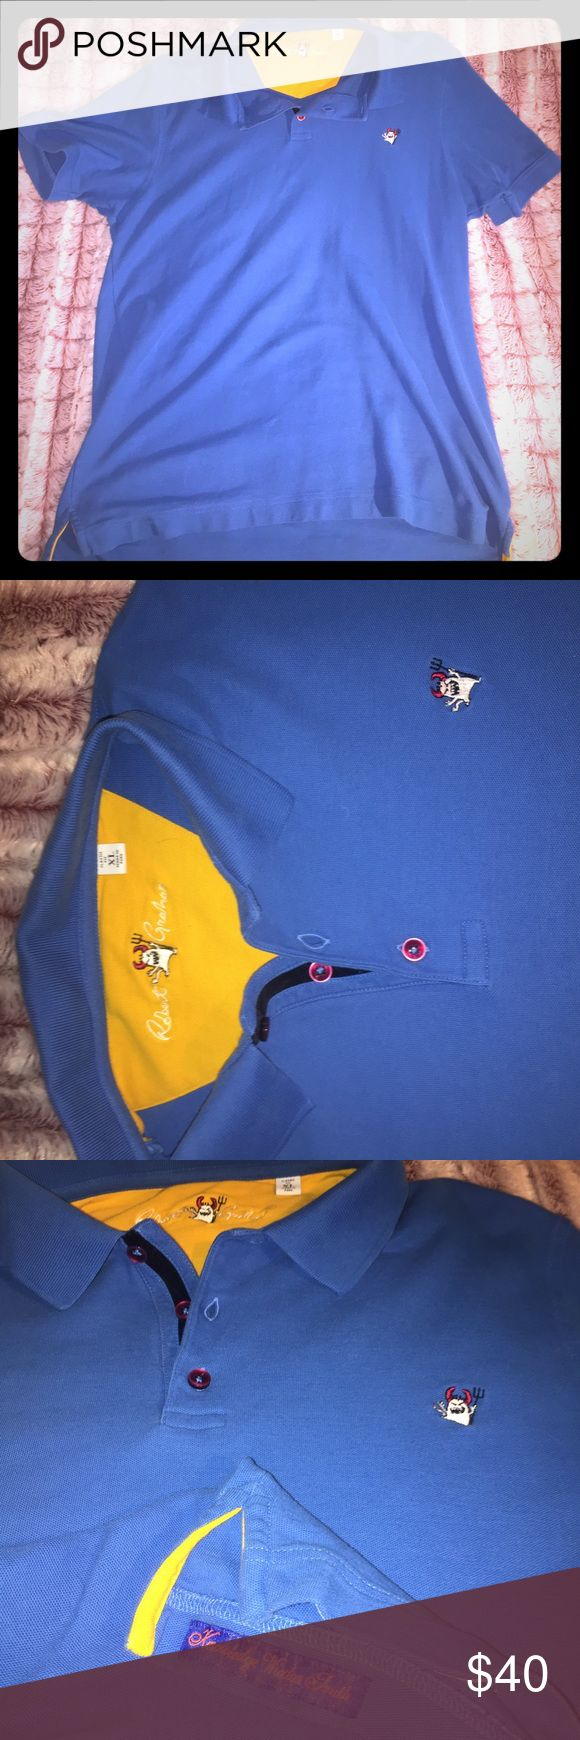 Rare Robert Graham red devil polo Royal blue Robert Graham red devil polo with yellow accent. Knowledge wisdom truth tag on bottom right and Robert Graham signature on back neck in red. Robert Graham Shirts Polos